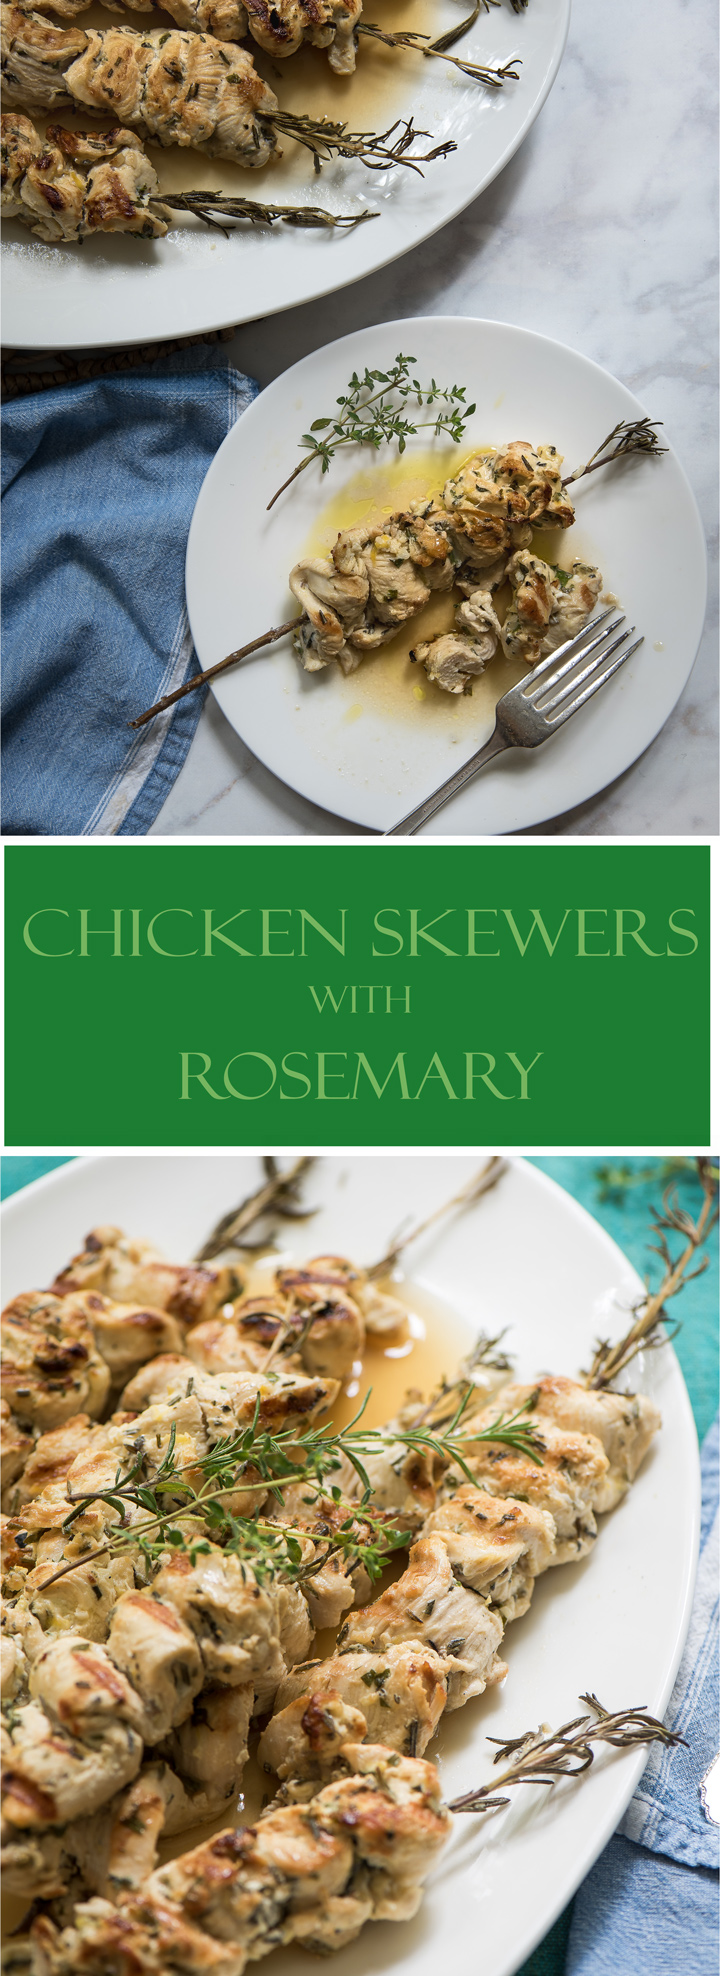 Seared chicken skewers with rosemary recipe. Moist chicken skewers made with chicken marinated in a fresh herb marinade and threaded on woody rosemary stems.